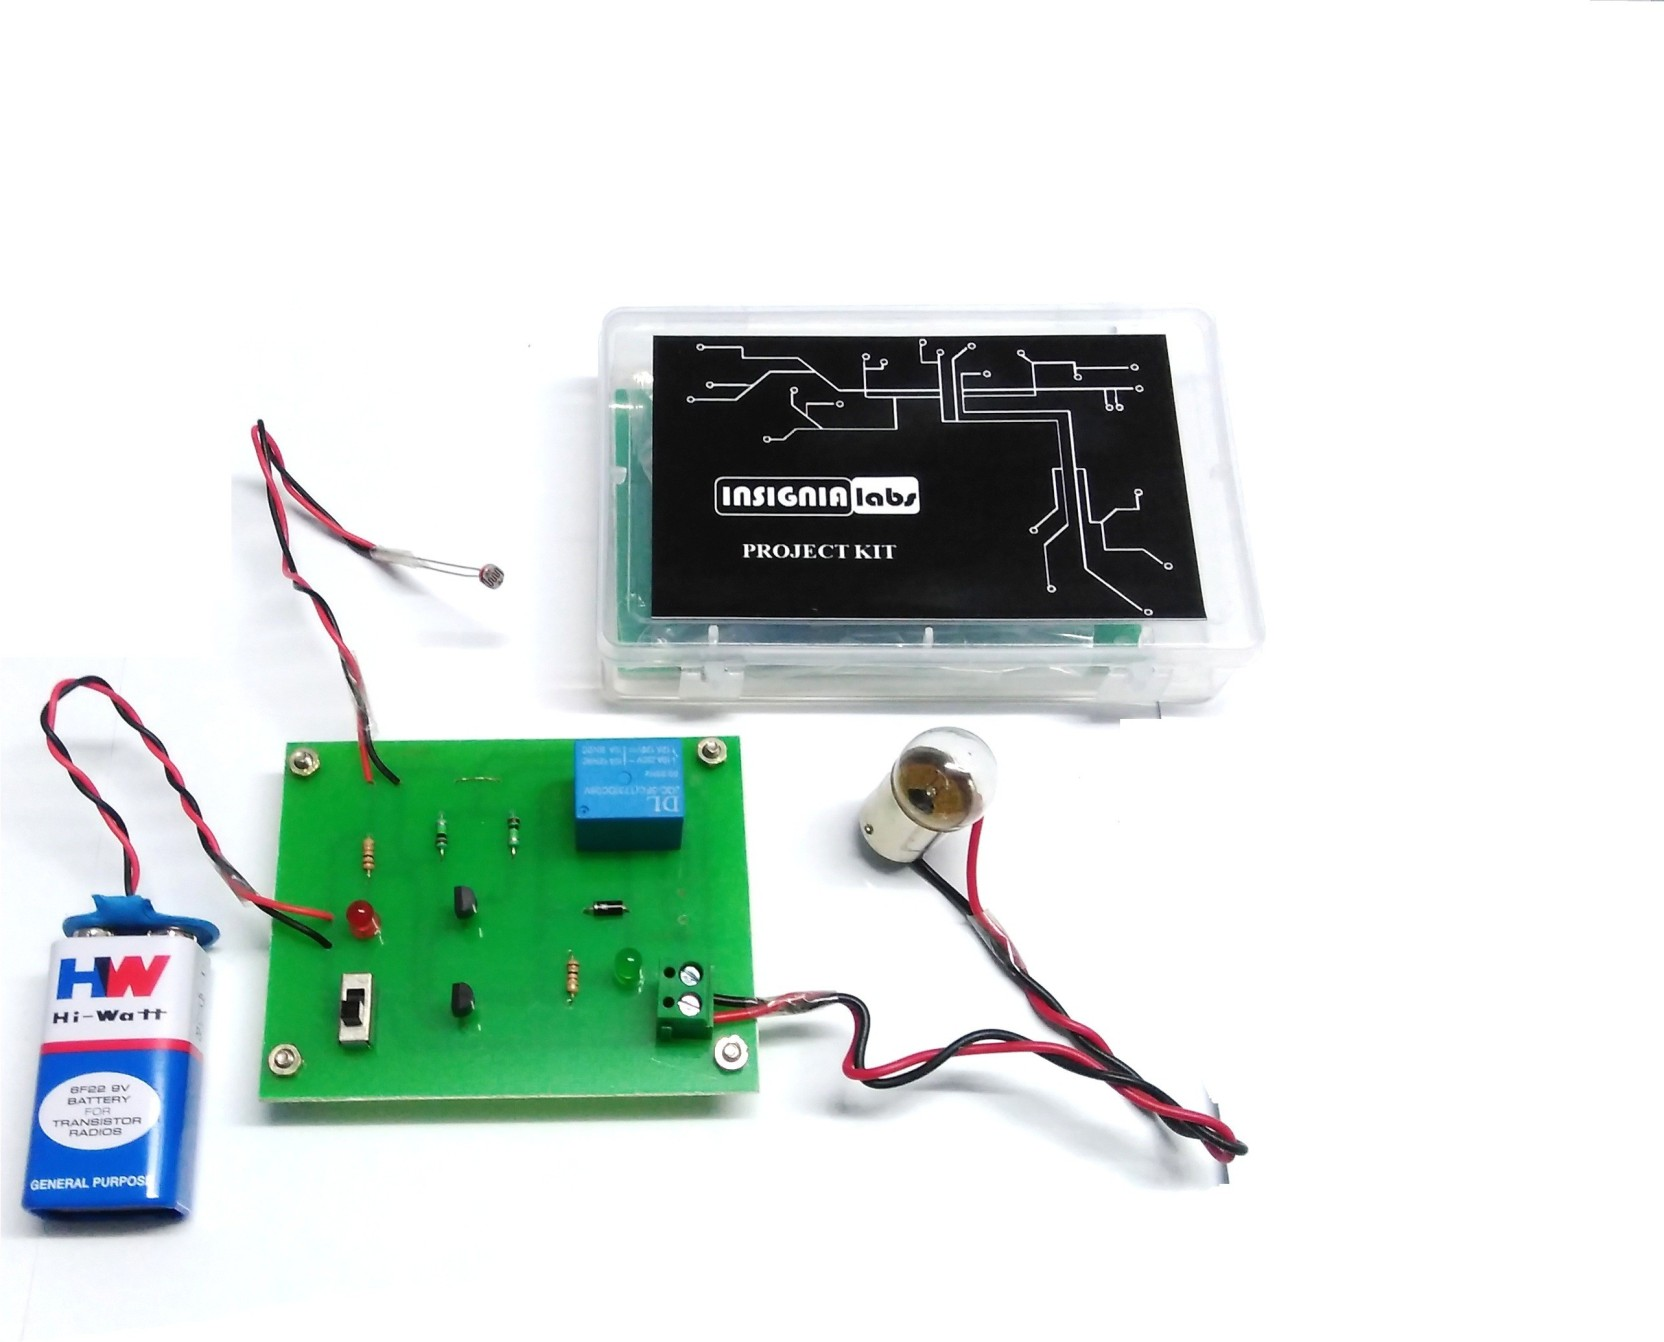 Insignia Labs Ldr Sensor Based Light Bulb Control Project Kit Image Working Of An In A Circuit Add To Cart